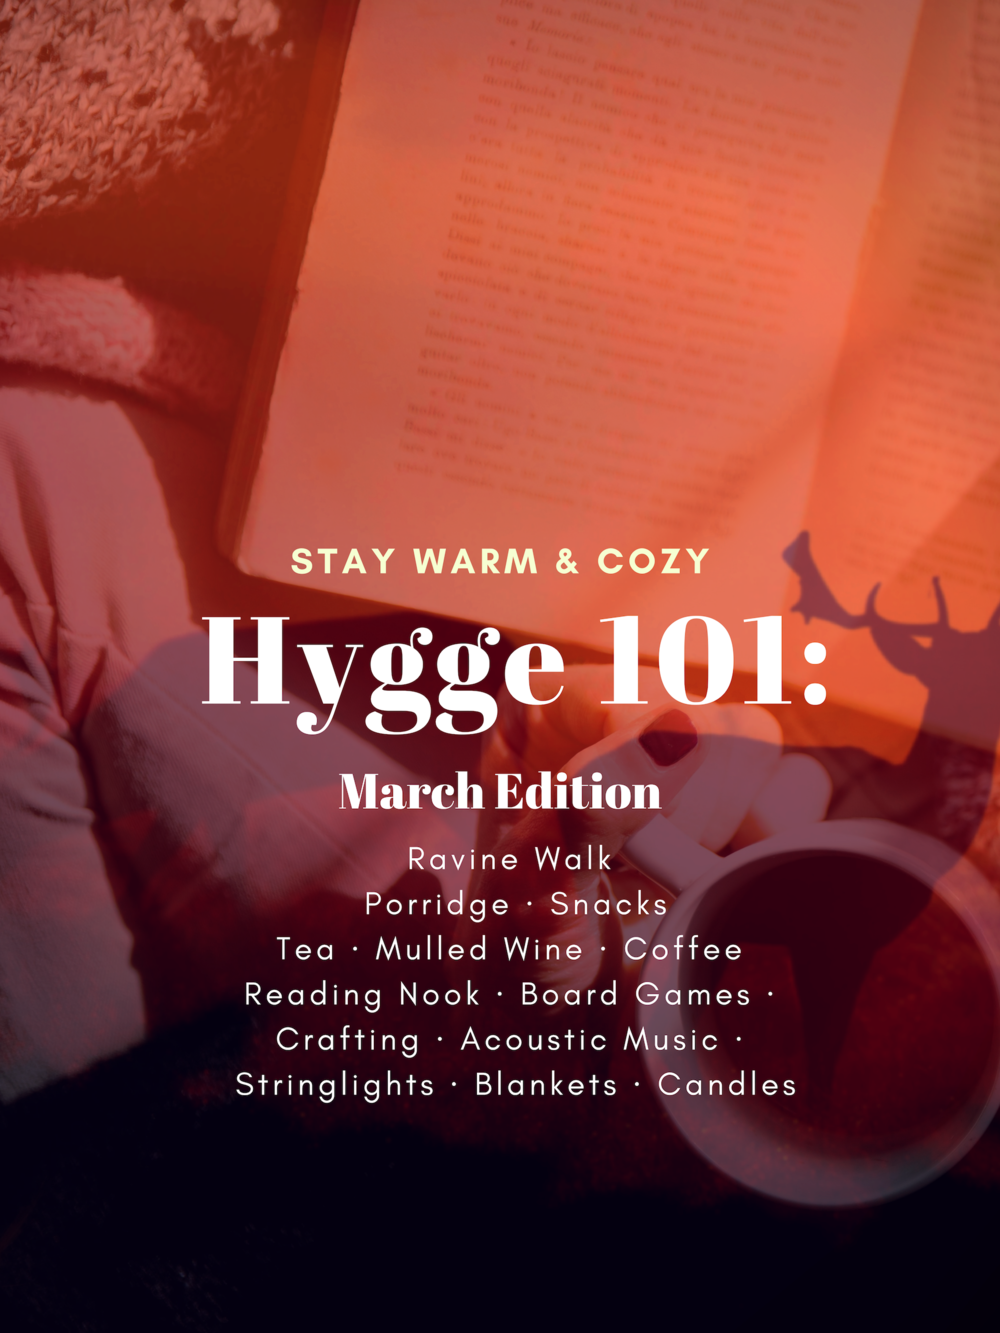 Hygge 101 March.png